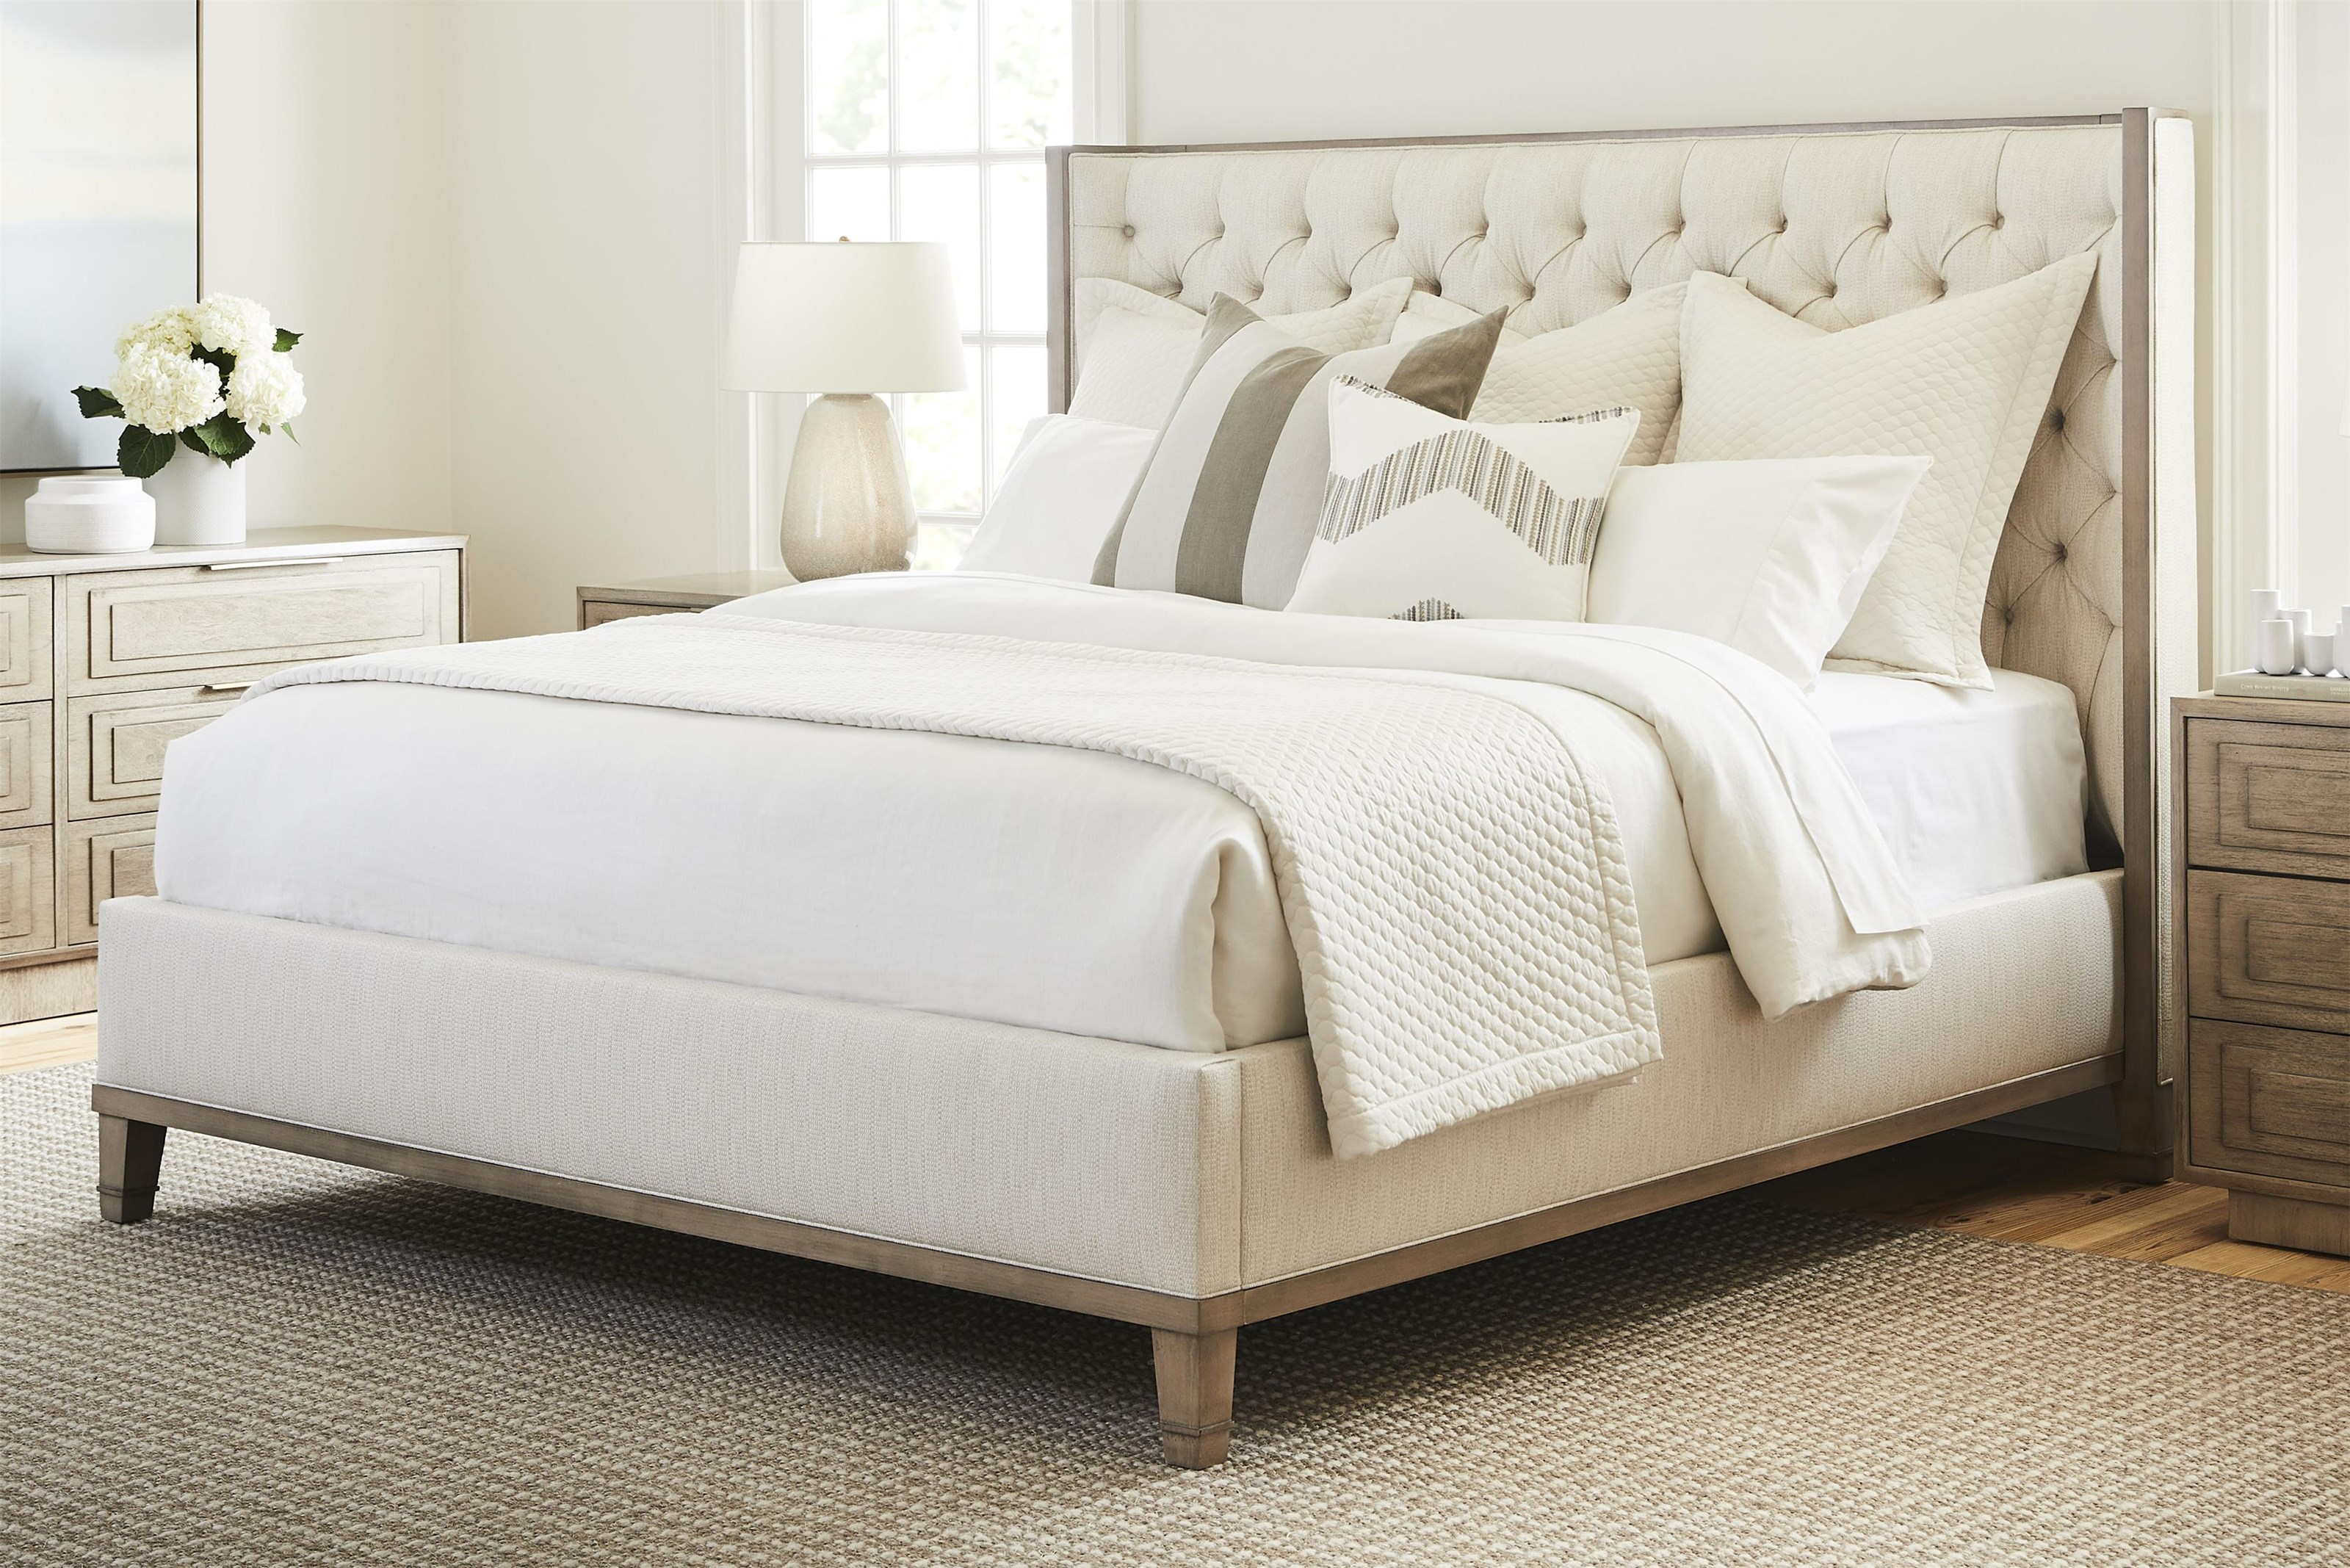 bowers michael weiss king tufted headboard bed